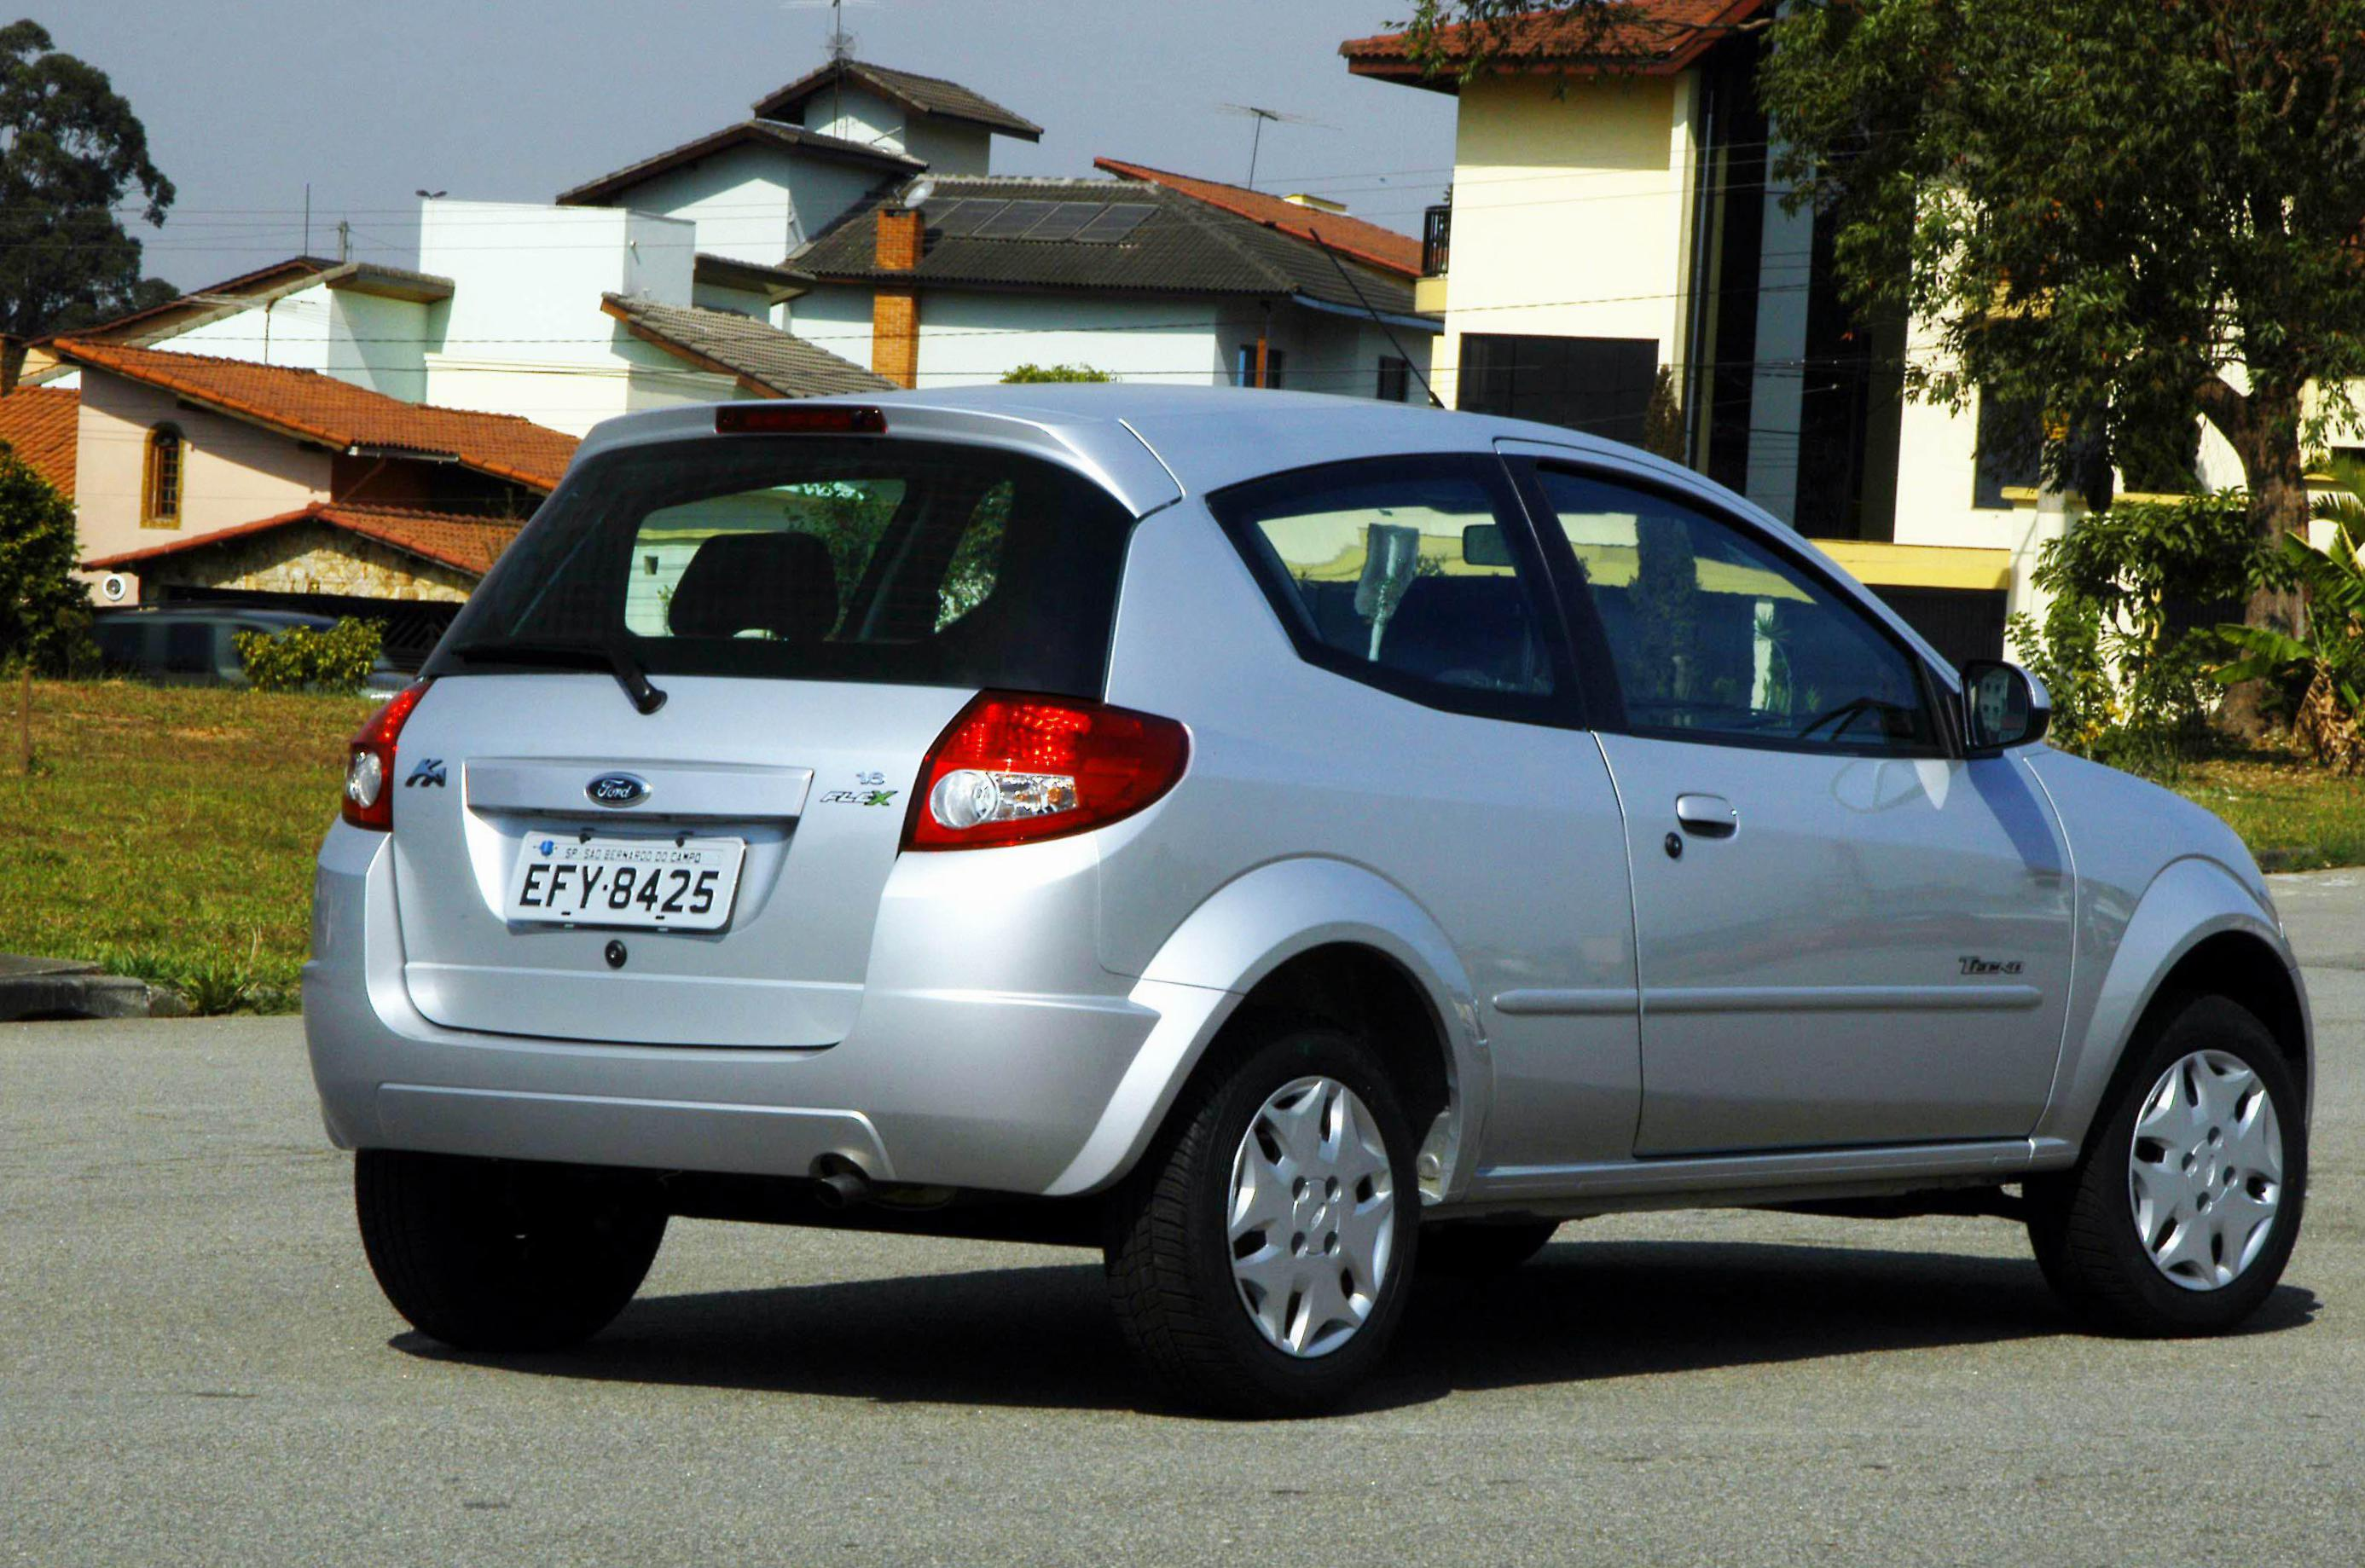 Ka Ford cost hatchback